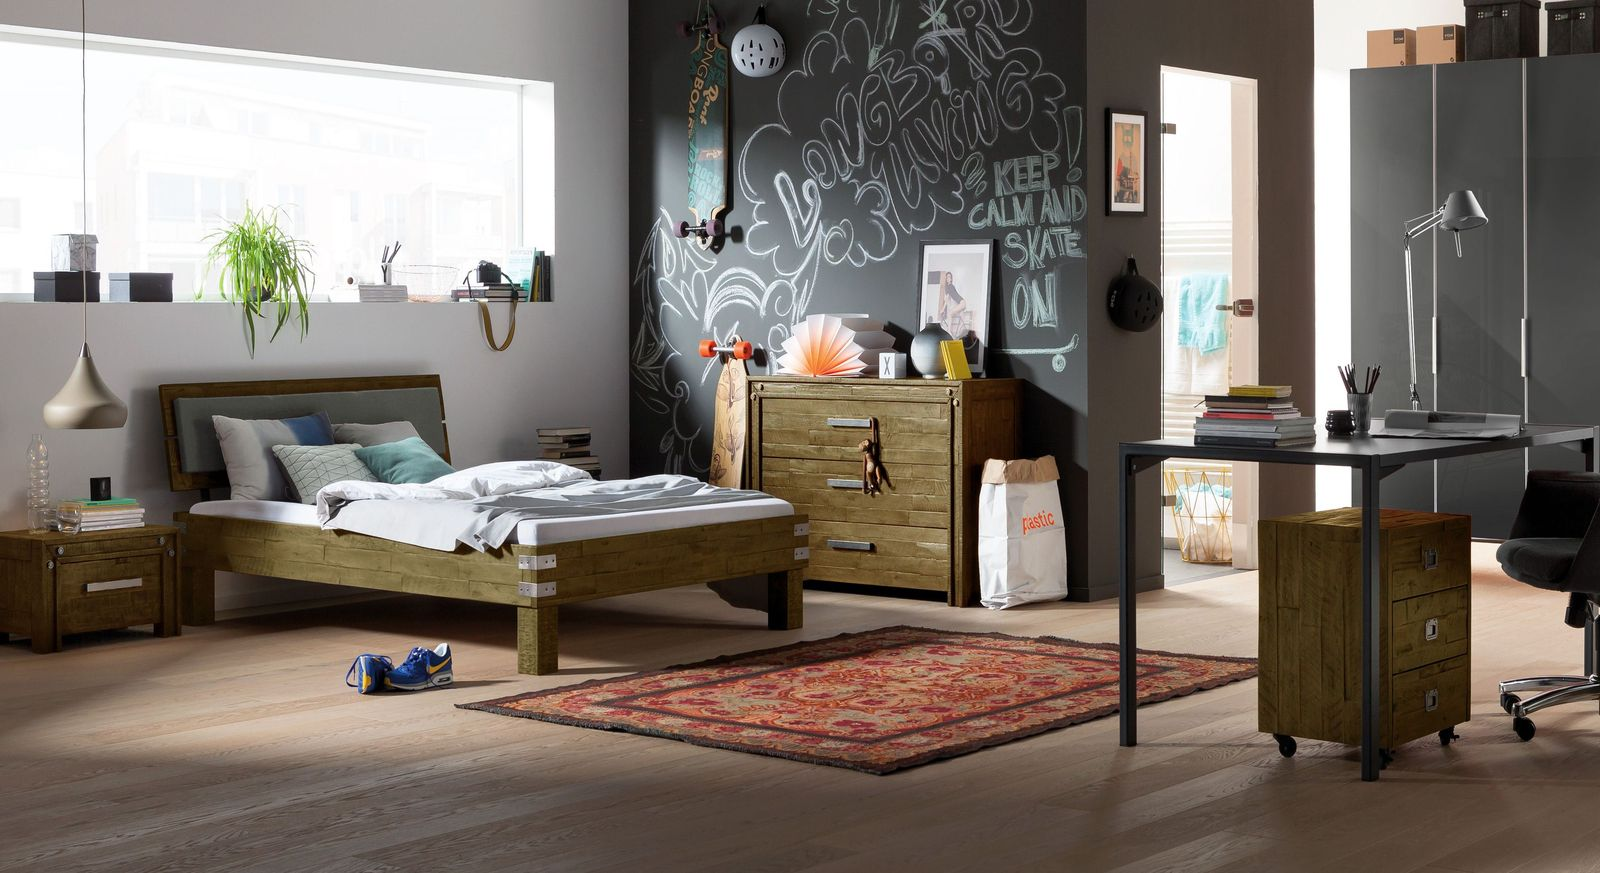 Beaufiful schlafzimmer fur baby style images kinderzimmer inspiration fur madchen style pray - Schlafzimmer style ...